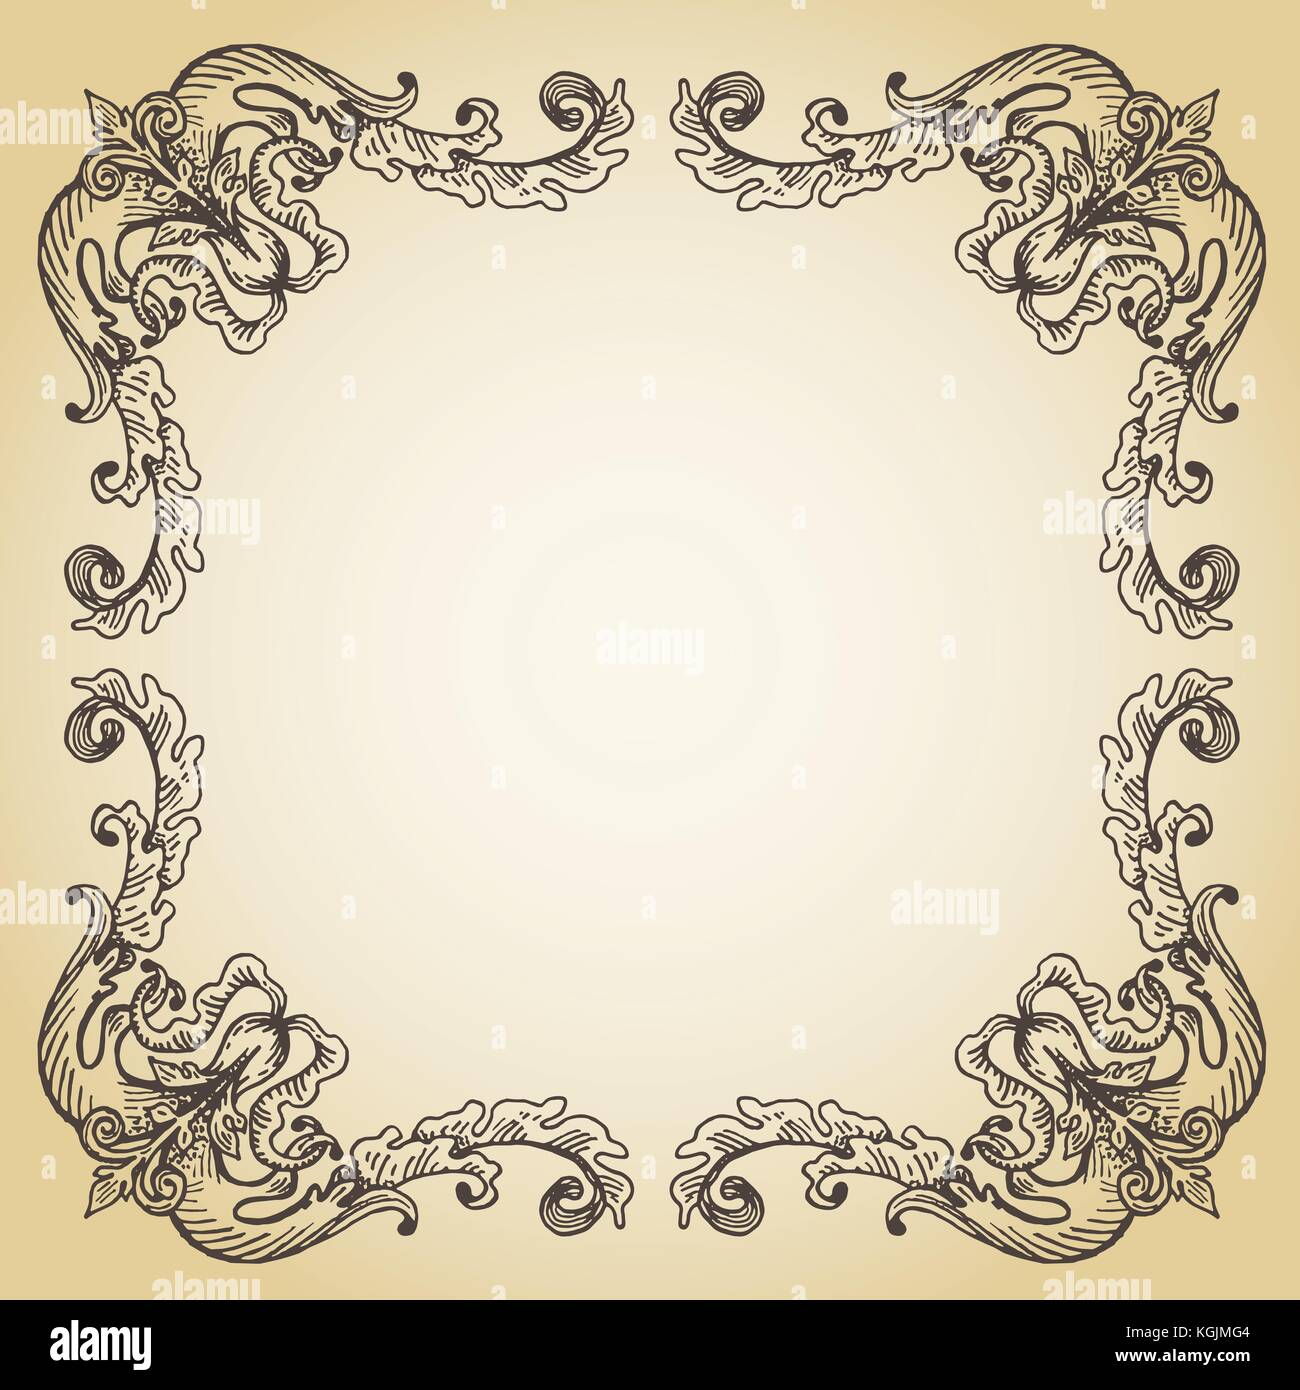 Antique frame drawing Rectangular Mirror Vector Calligraphic Page Decoration Hand Drawn Antique Frame On Old Paper Dreamstimecom Vector Calligraphic Page Decoration Hand Drawn Antique Frame On Old